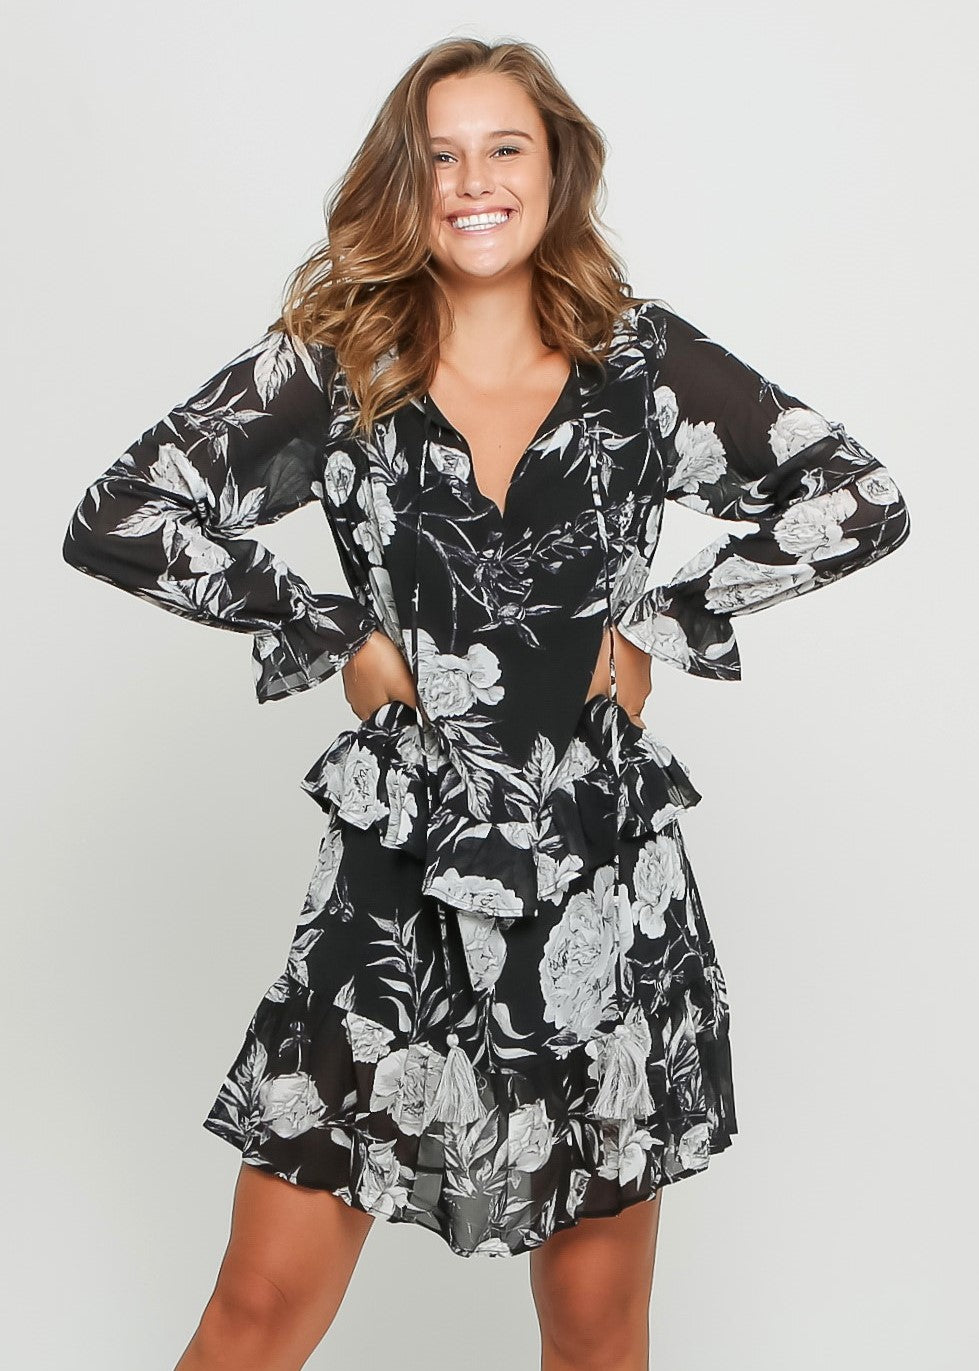 GRACIE DRESS - BLACK FLORAL